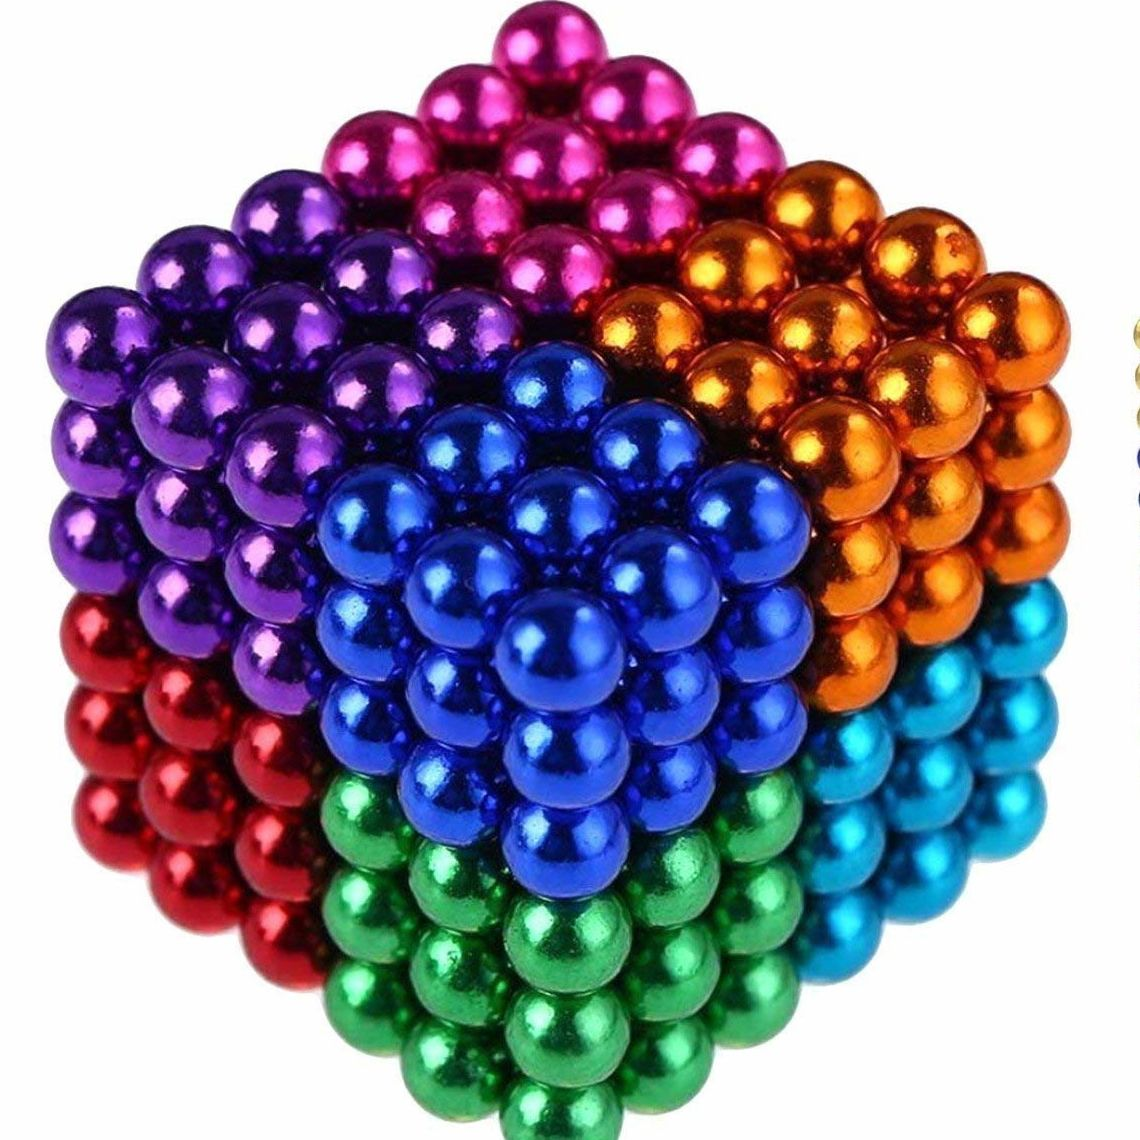 Amazon hot sale Magnetic balls education toy baby toy kids toy